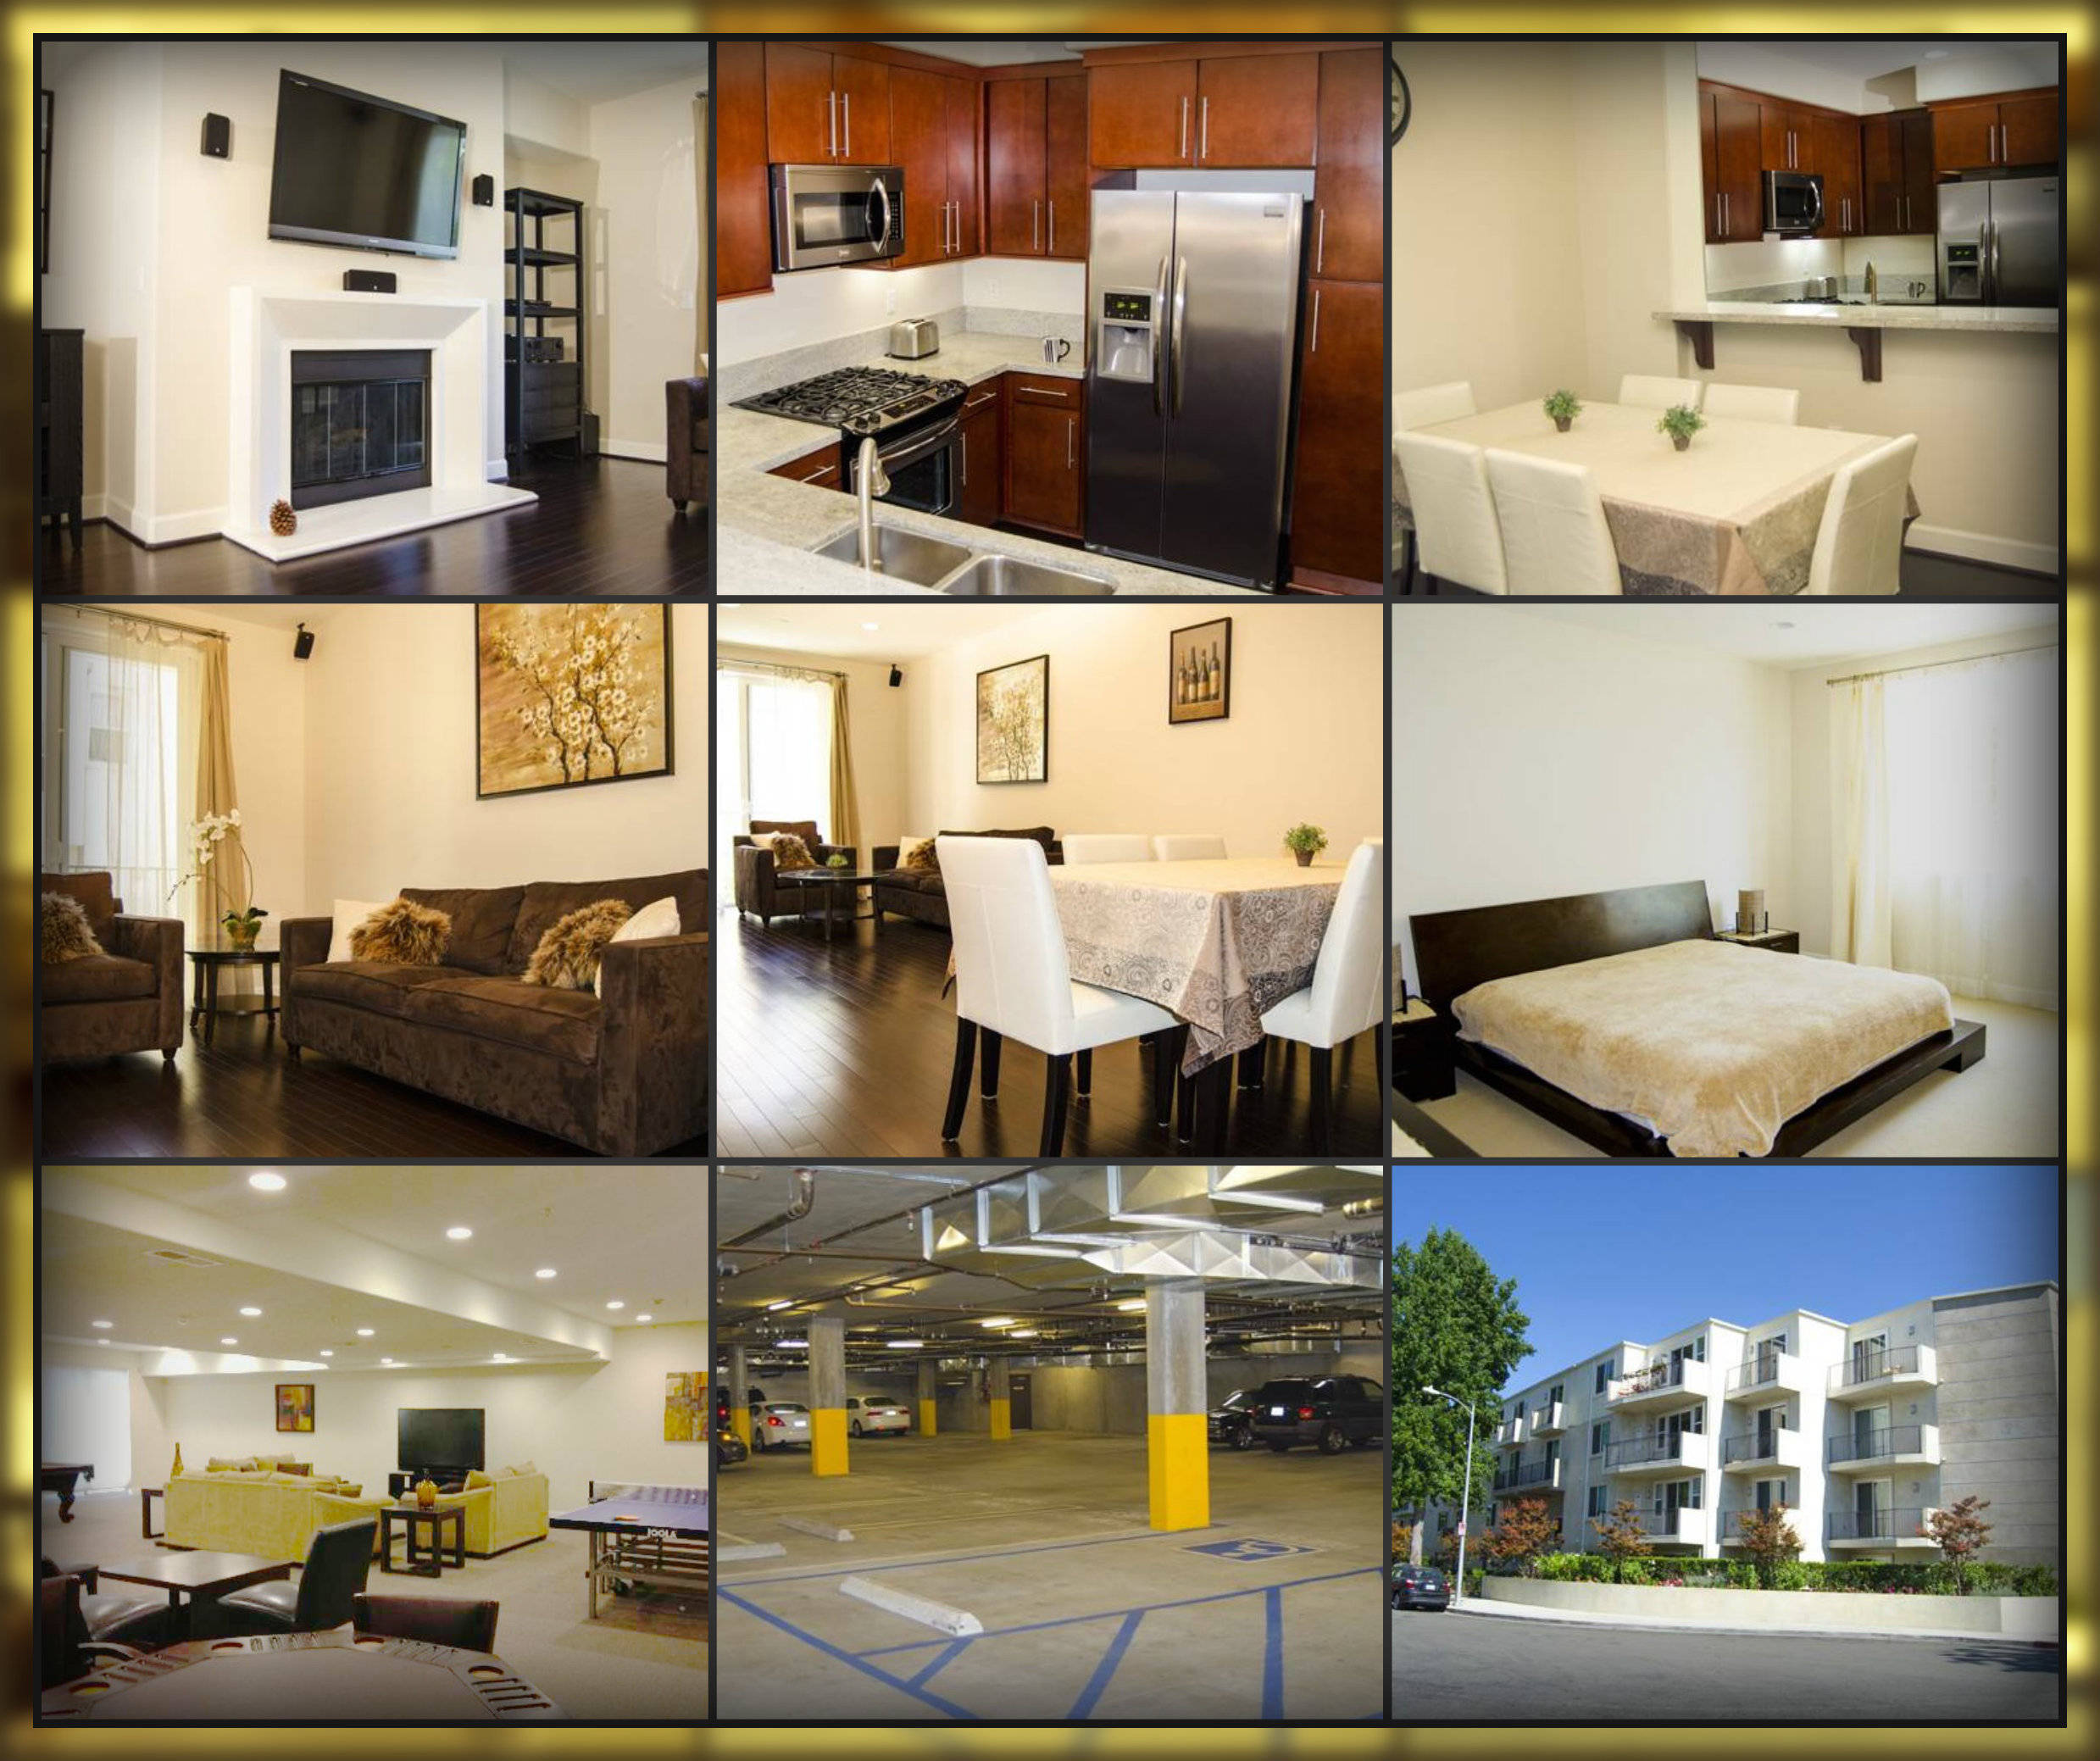 Condominium For Rent By Owner: New! Sherman Oaks 3 BR 3 BA Condo For Rent